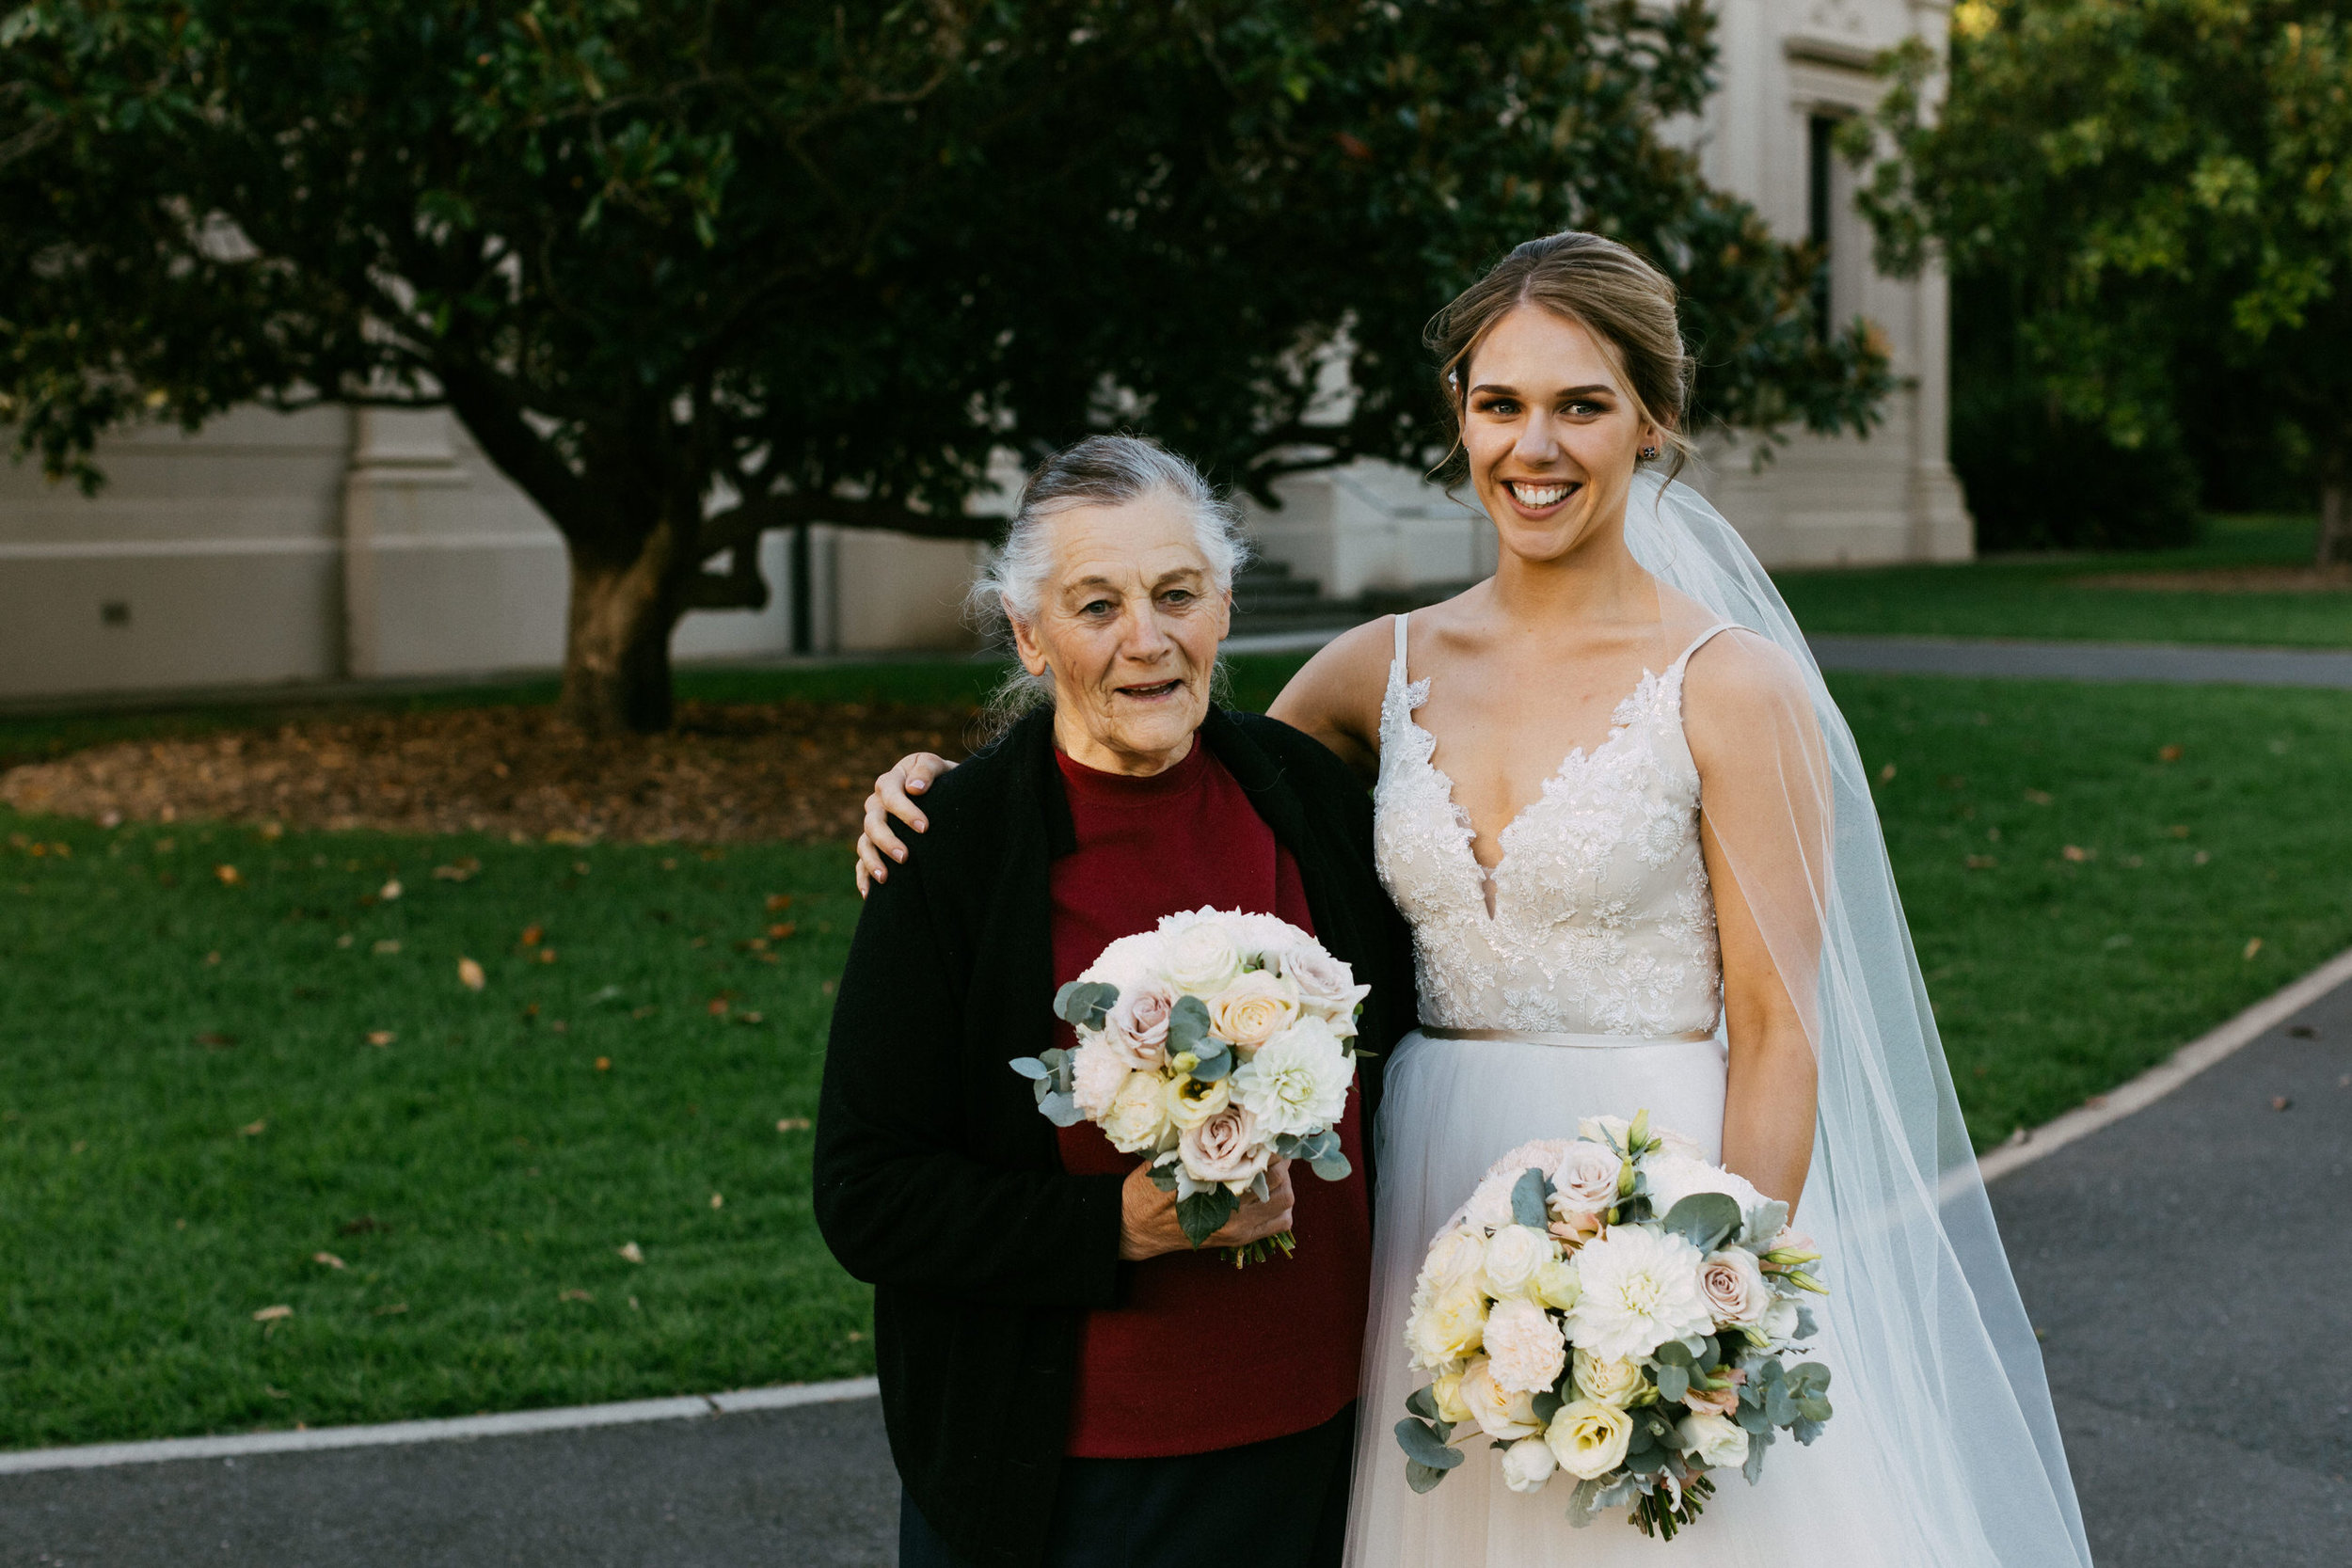 Adelaide Wedding 2019 110.jpg